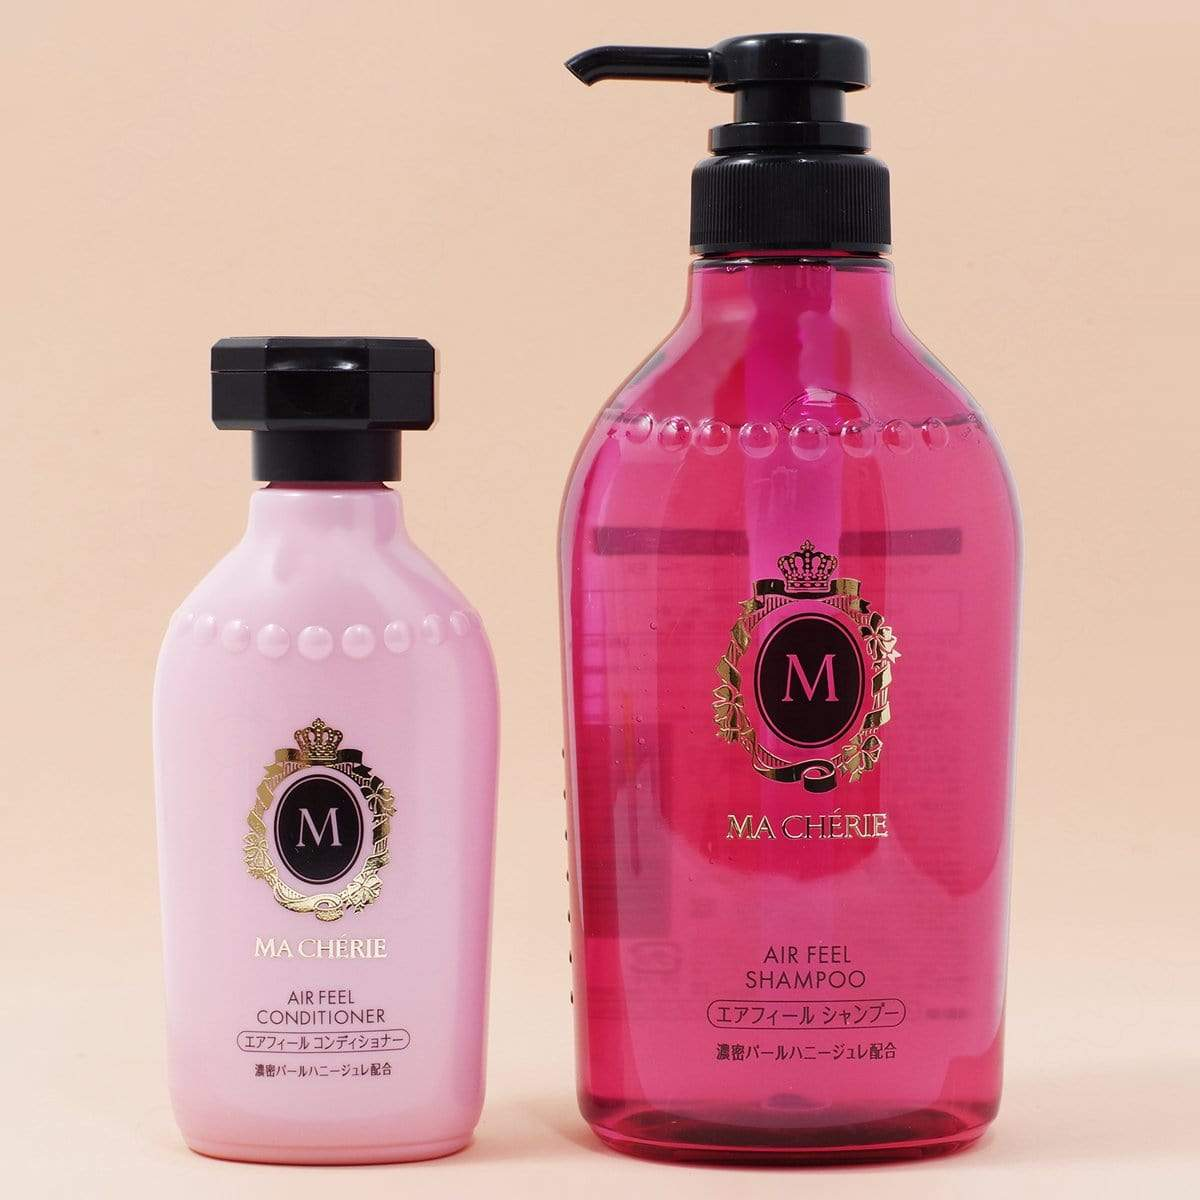 Macherie Air Feel Shampoo & Conditioner Set